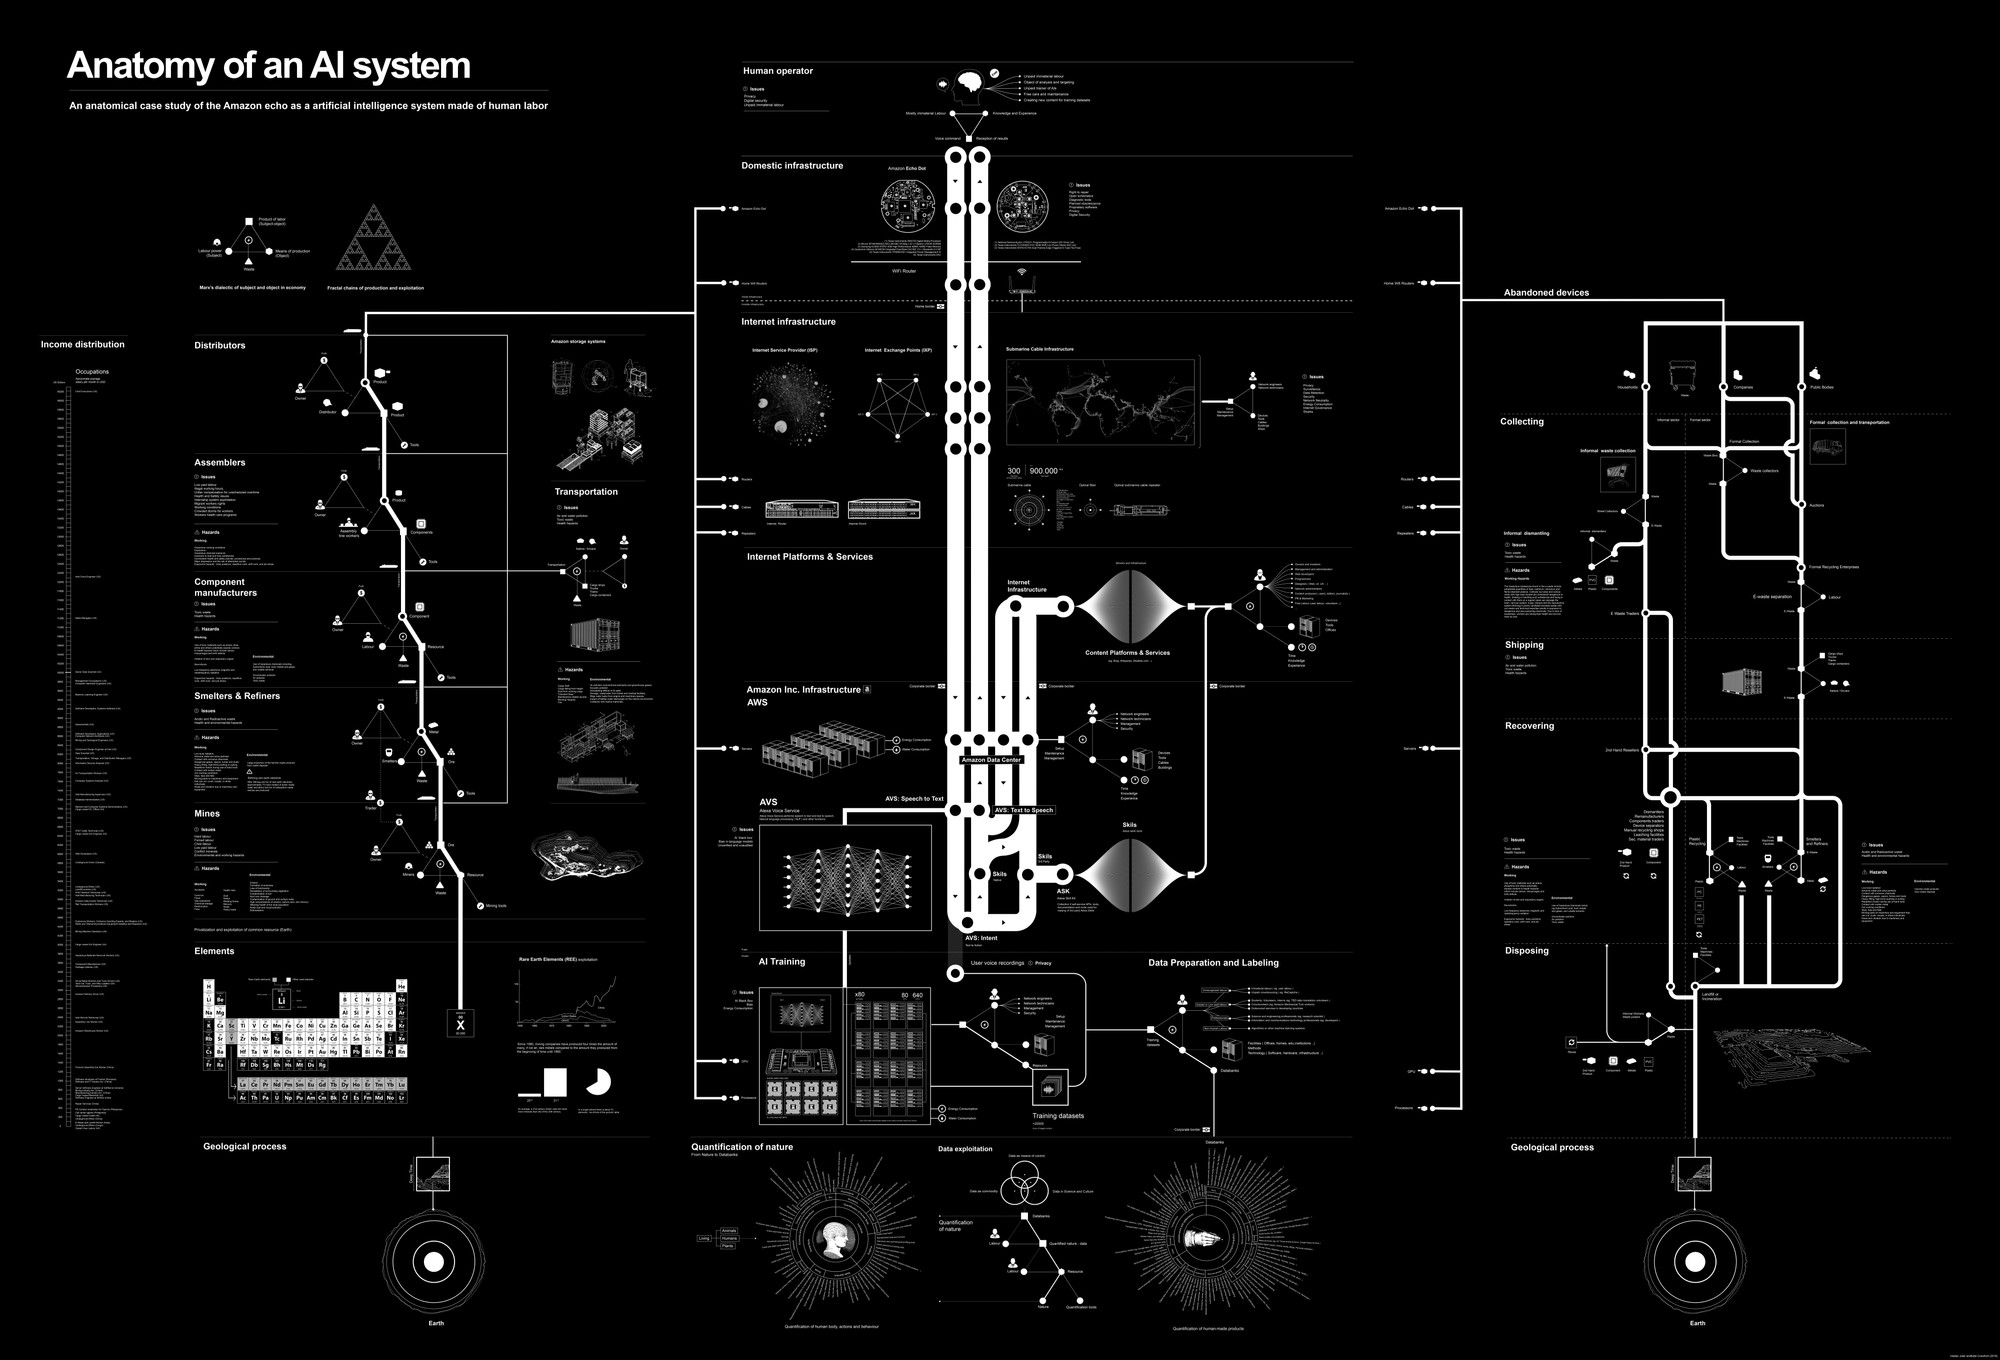 Kate Crawford, Vladan Joler. Anatomy of an AI System. 2018